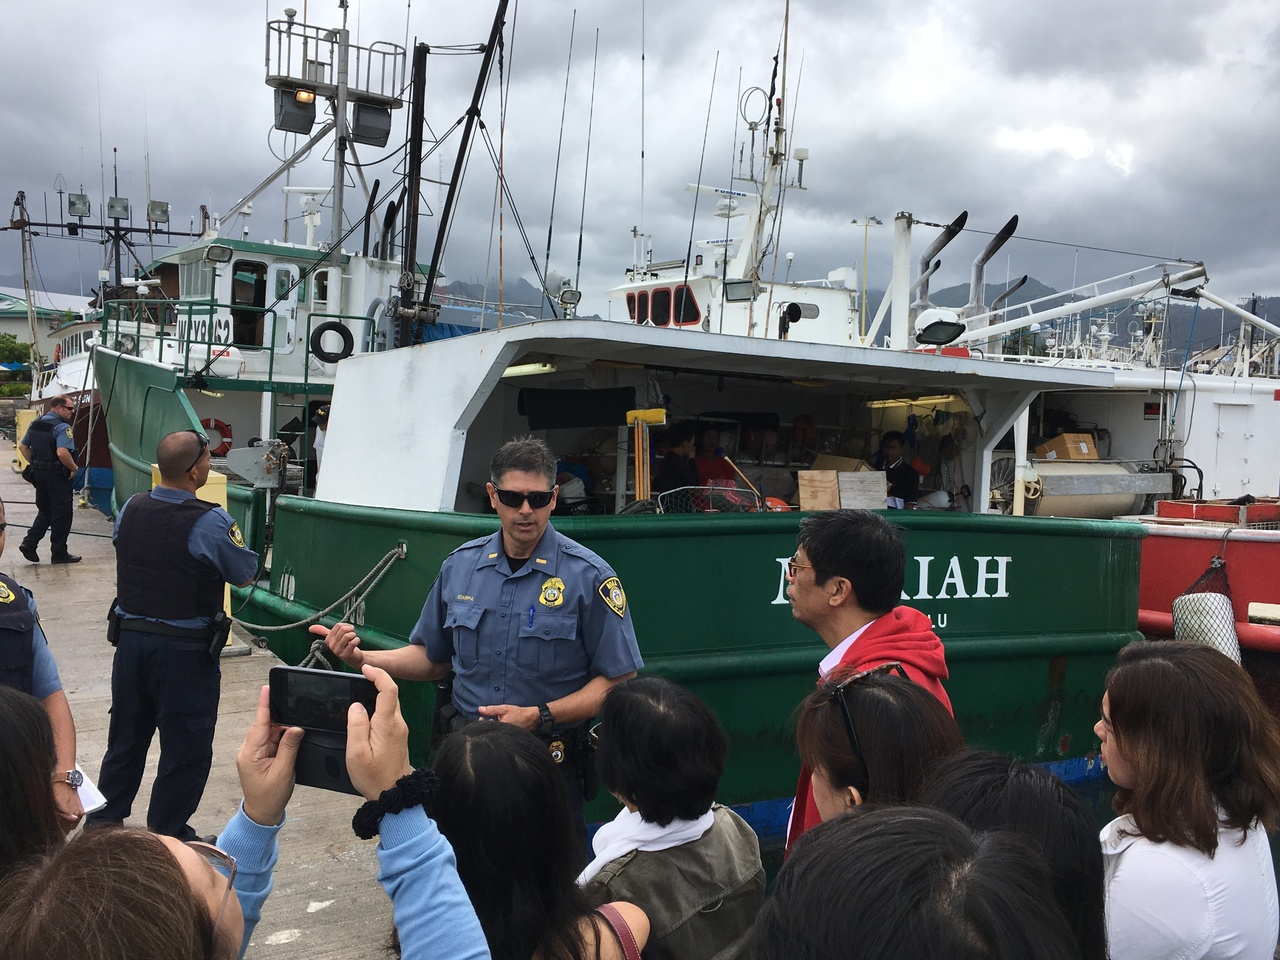 Inspection of longline fishing vessel led by NOAA Office of Law Enforcement's Joe Scarpa at Pier 38 in Honolulu